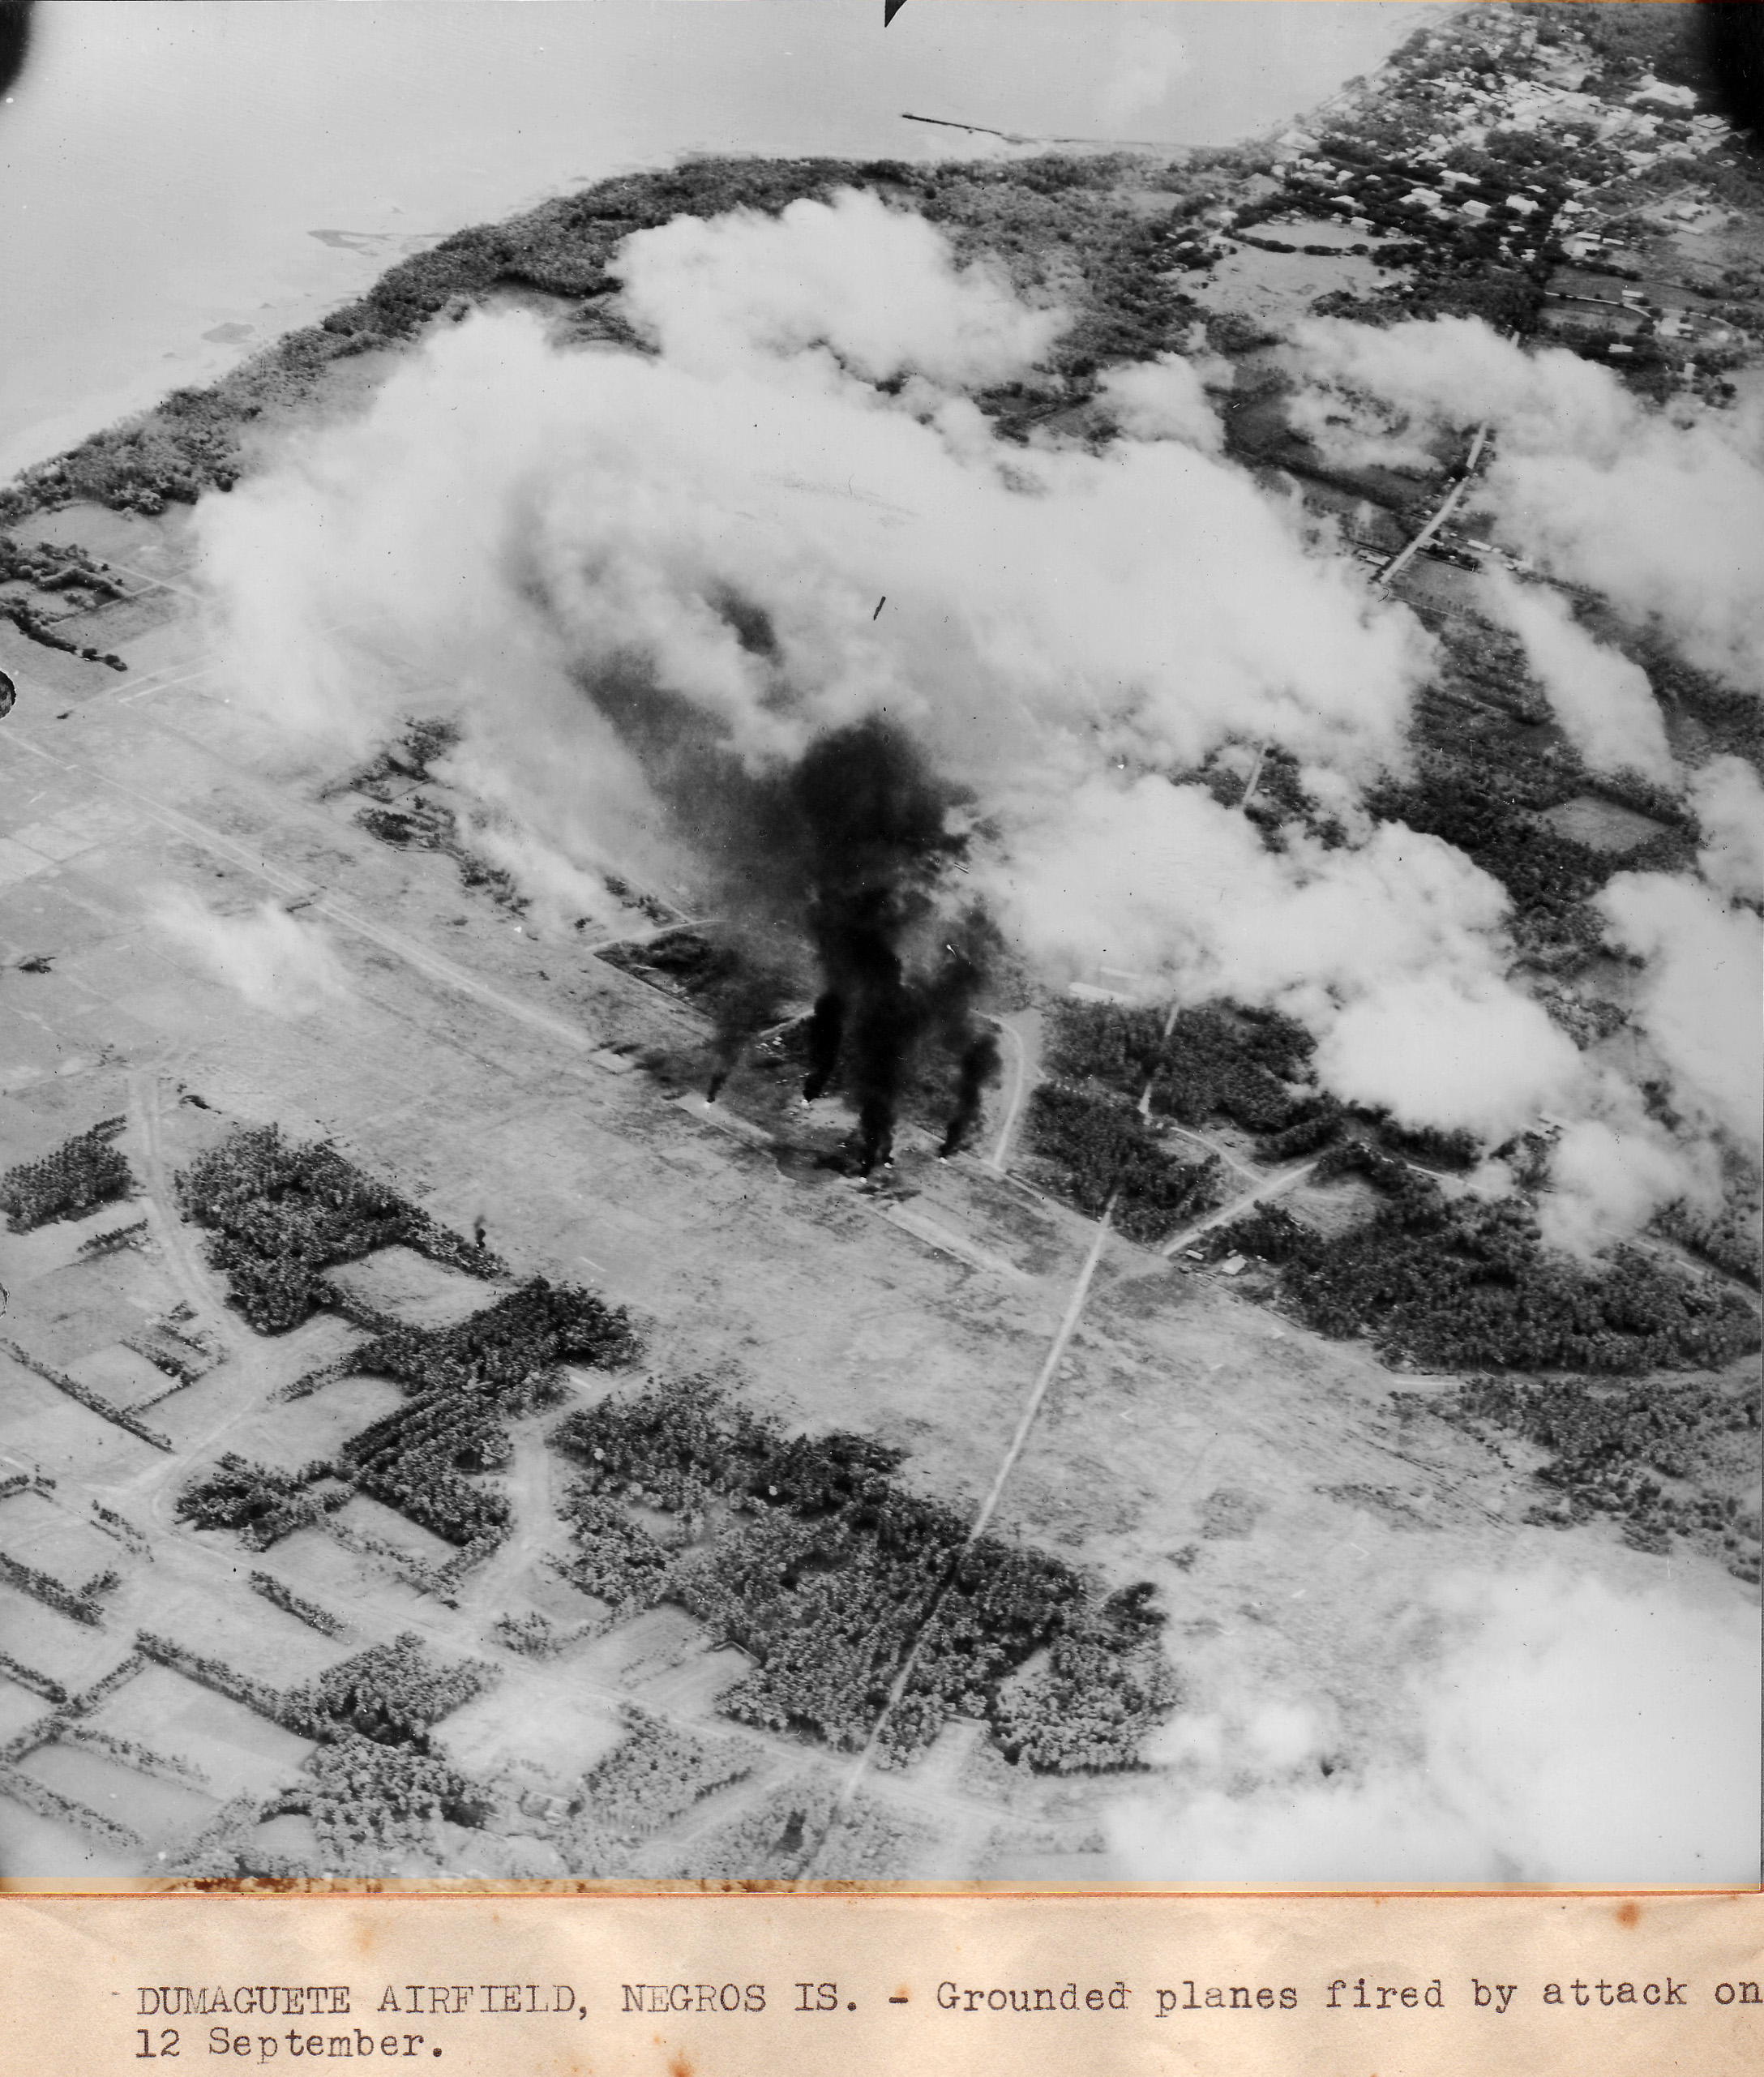 CV 9 USS Essex aircraft attacked Dumaguete airfield to support the landings on Peleliu 12th Sep 1944 01